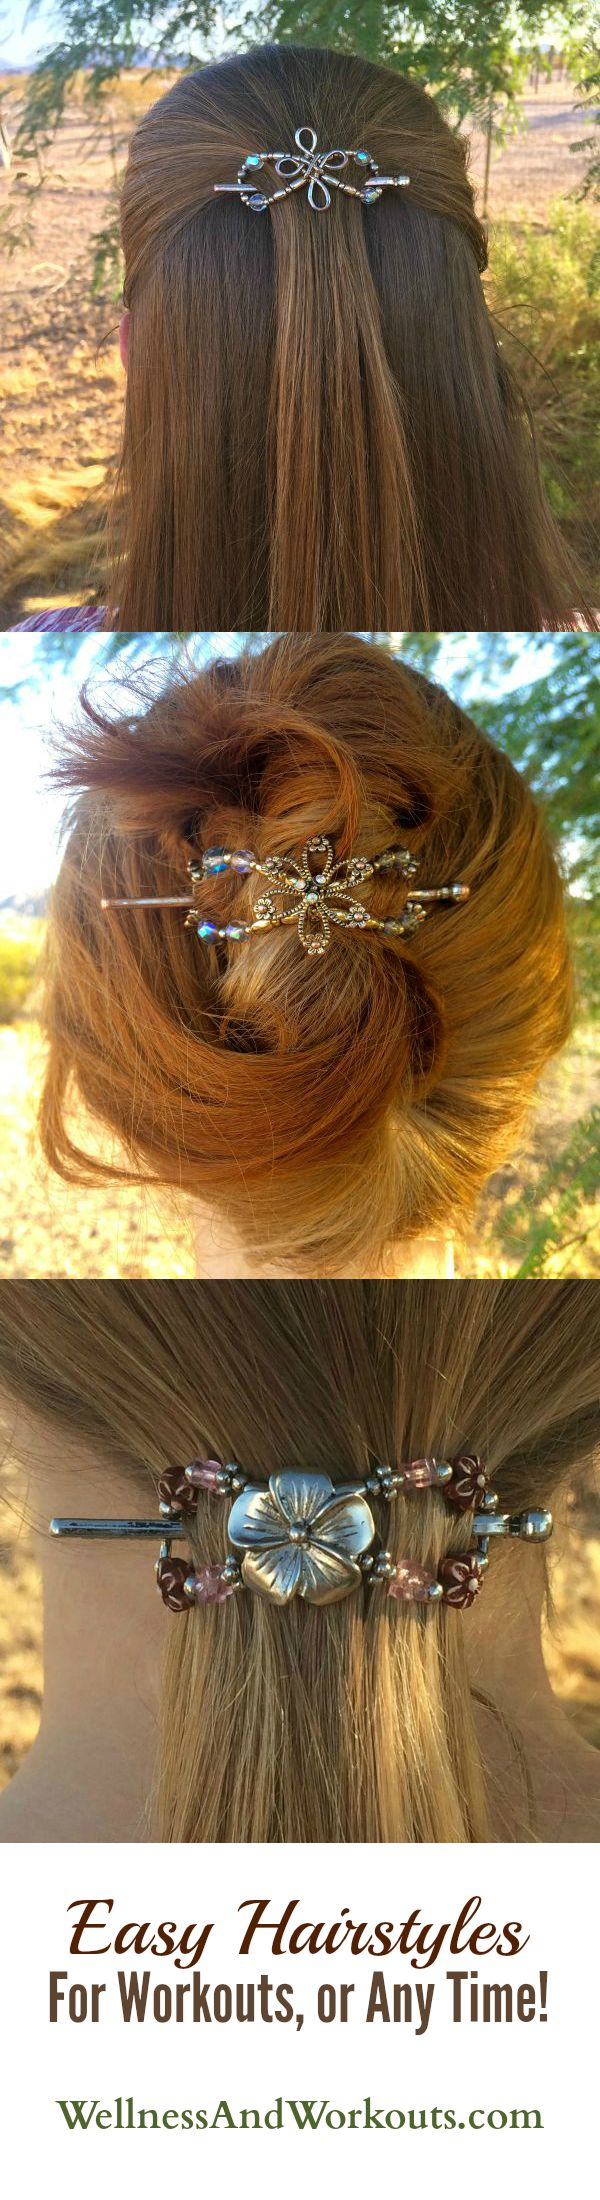 Lilla Rose Flexi Clips, Easy Hair Styles for workouts or anytime!